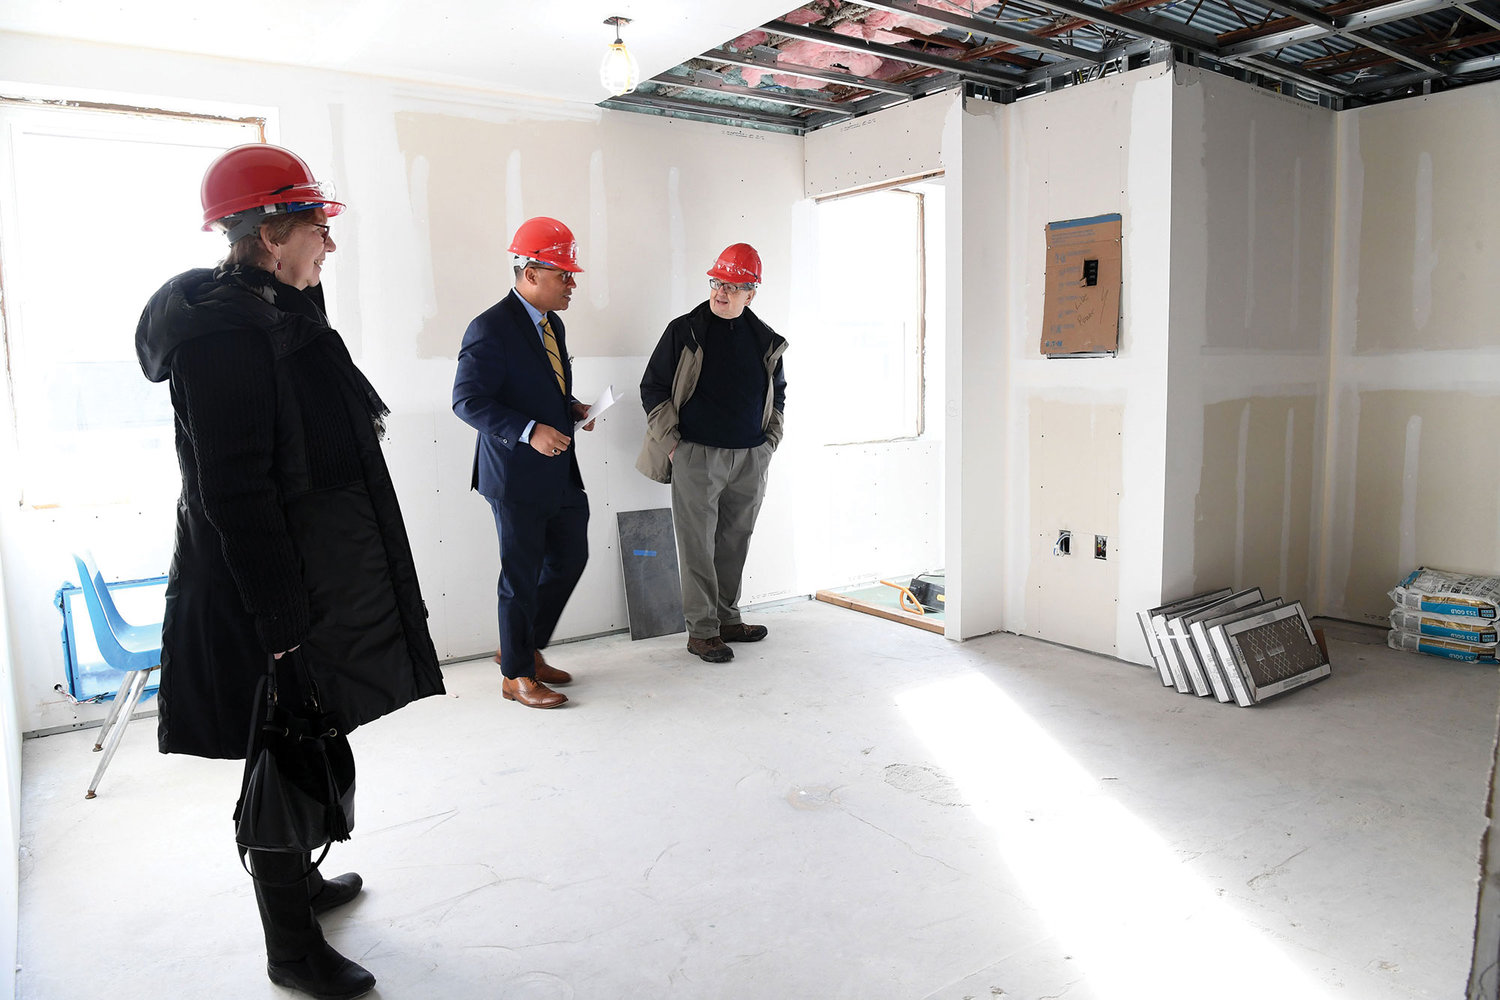 Hugo Pizarro, a senior vice president and chief experience officer for ArchCare, center, shows Pat and Thomas Alberto the construction progress on ArchCare's $3 million project to provide independent housing for young adults with autism at St. Teresa parish on Staten Island Jan. 17.